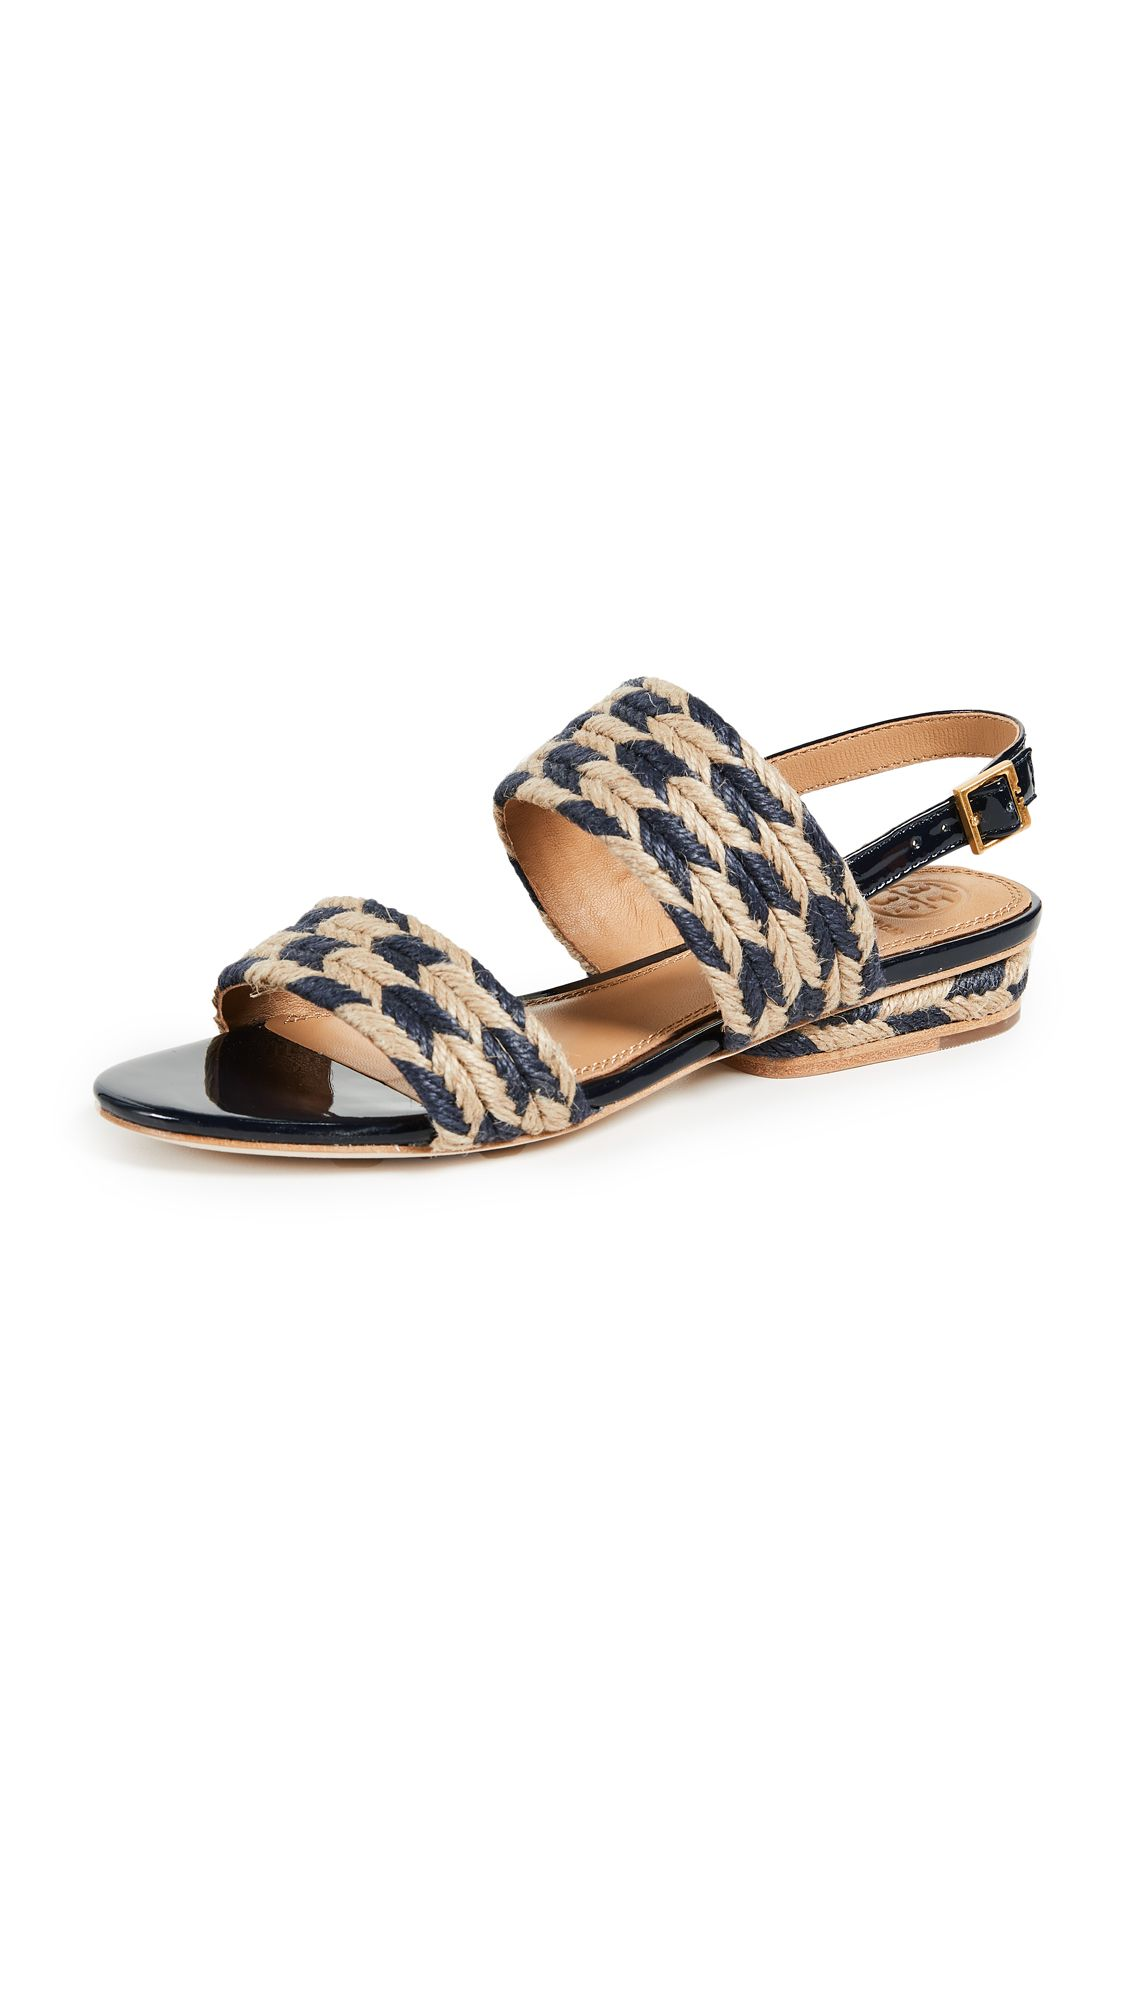 523afb10a044 TORY BURCH LOLA FLAT SANDALS.  toryburch  shoes